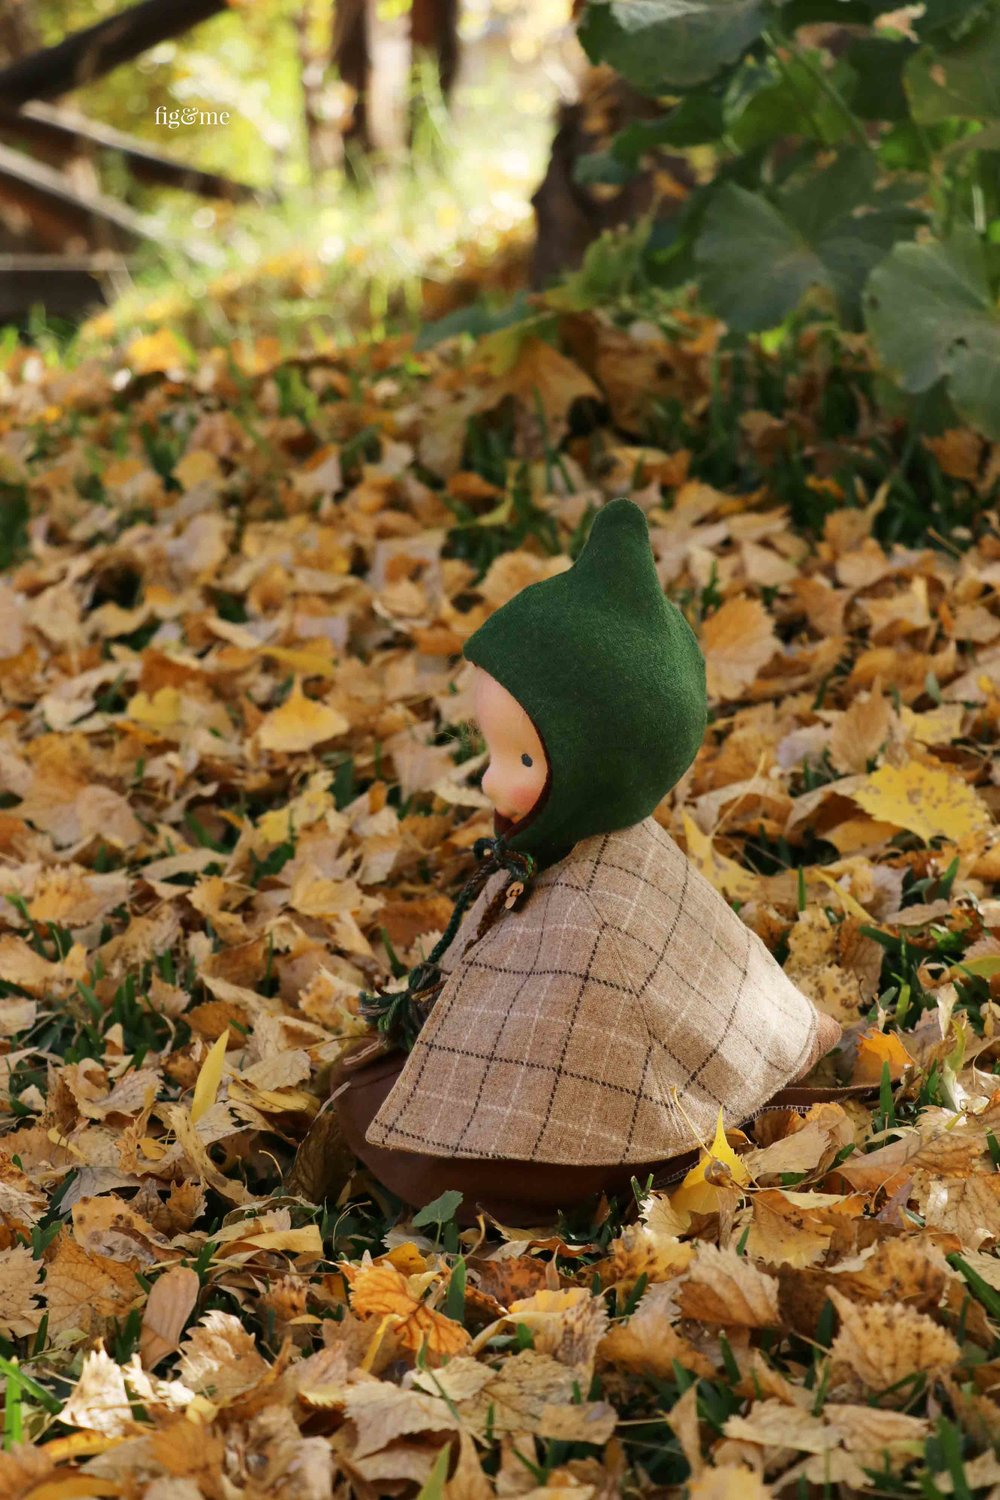 Enjoying the hurrahs of autumn. Aelfreda is a custom natural fiber art doll, made by Fig and Me.